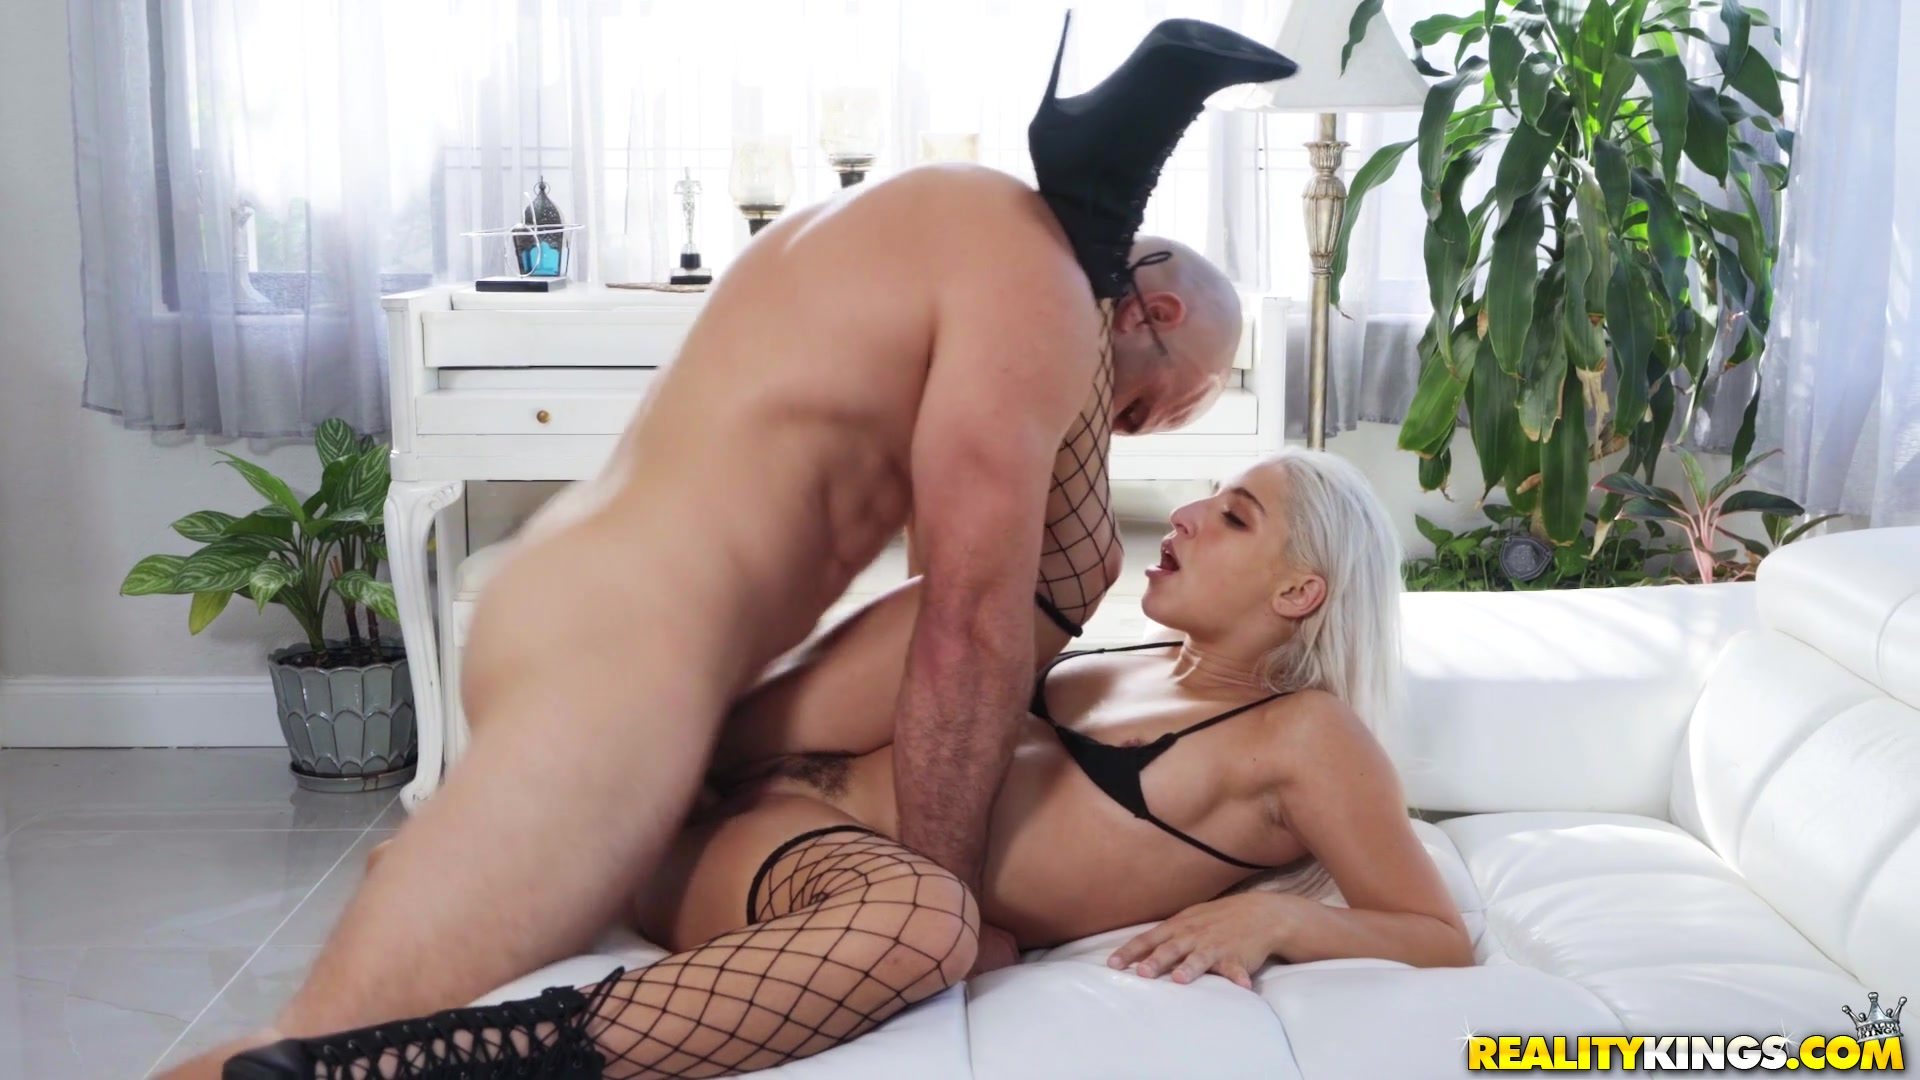 Hunk shows this perfect blonde mind blowing porn pleasures